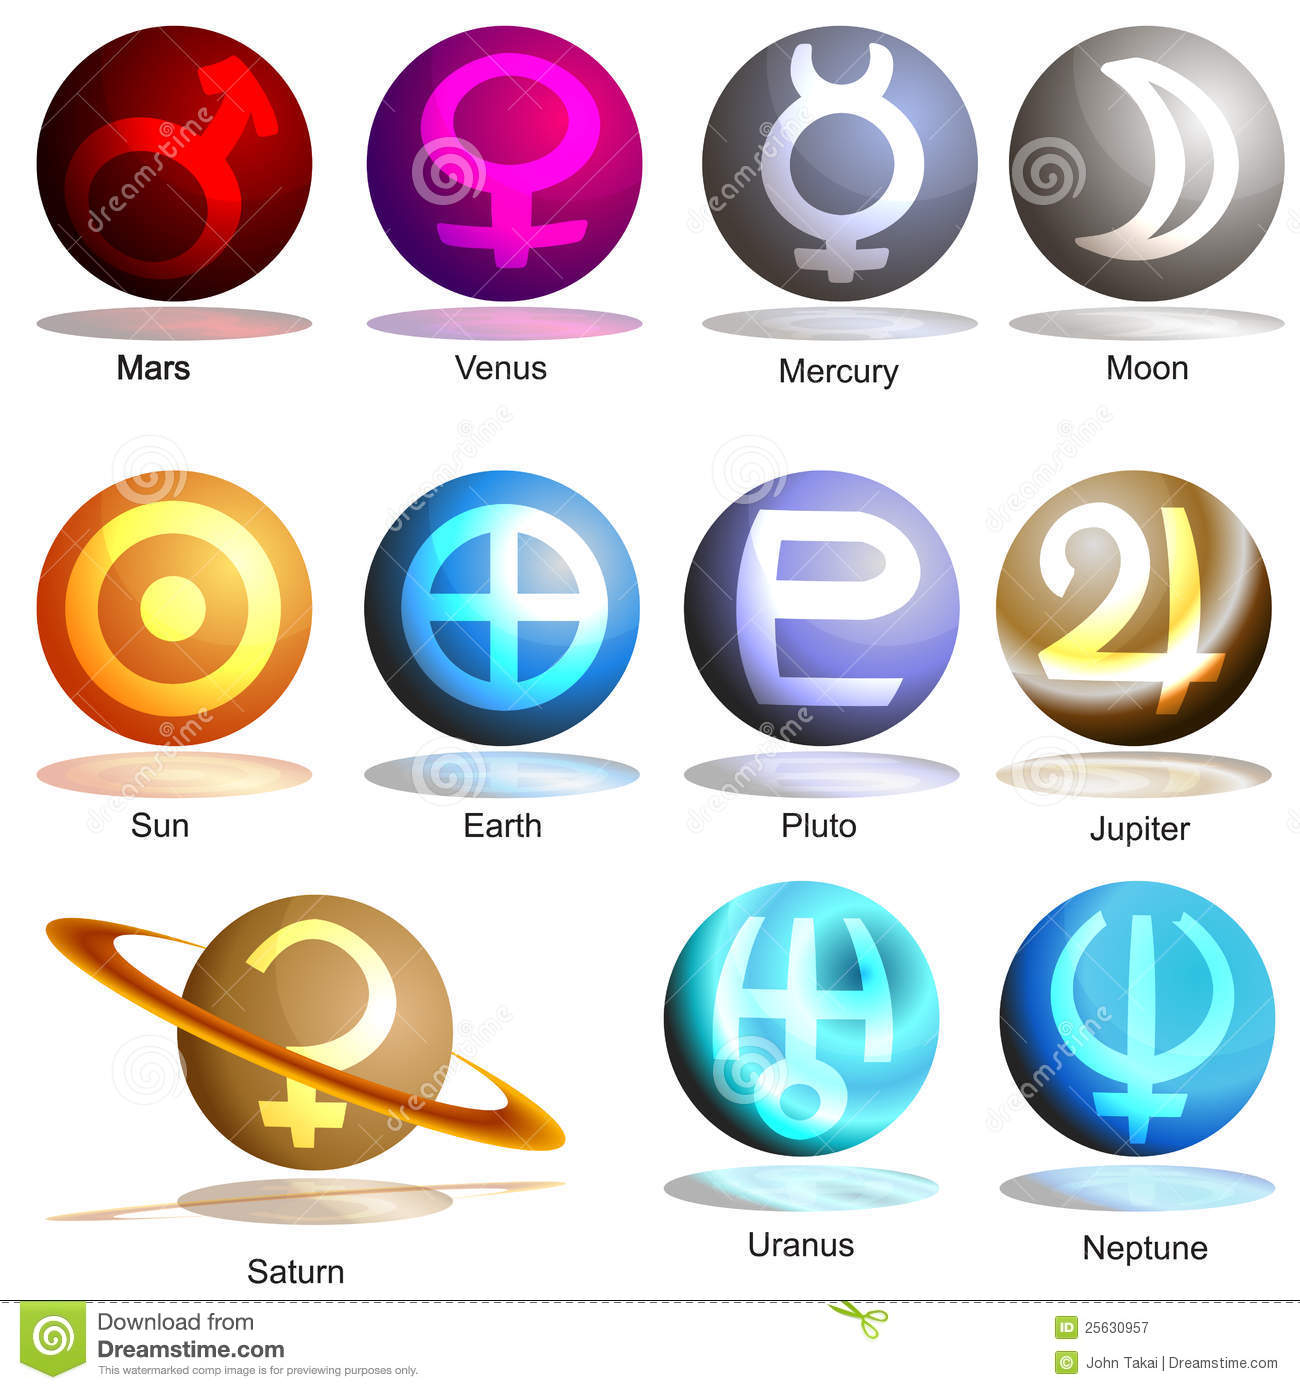 Symbols of planets image collections symbol and sign ideas planet symbol 3d set stock vector illustration of design 25630957 planet symbol 3d set buycottarizona image biocorpaavc Images